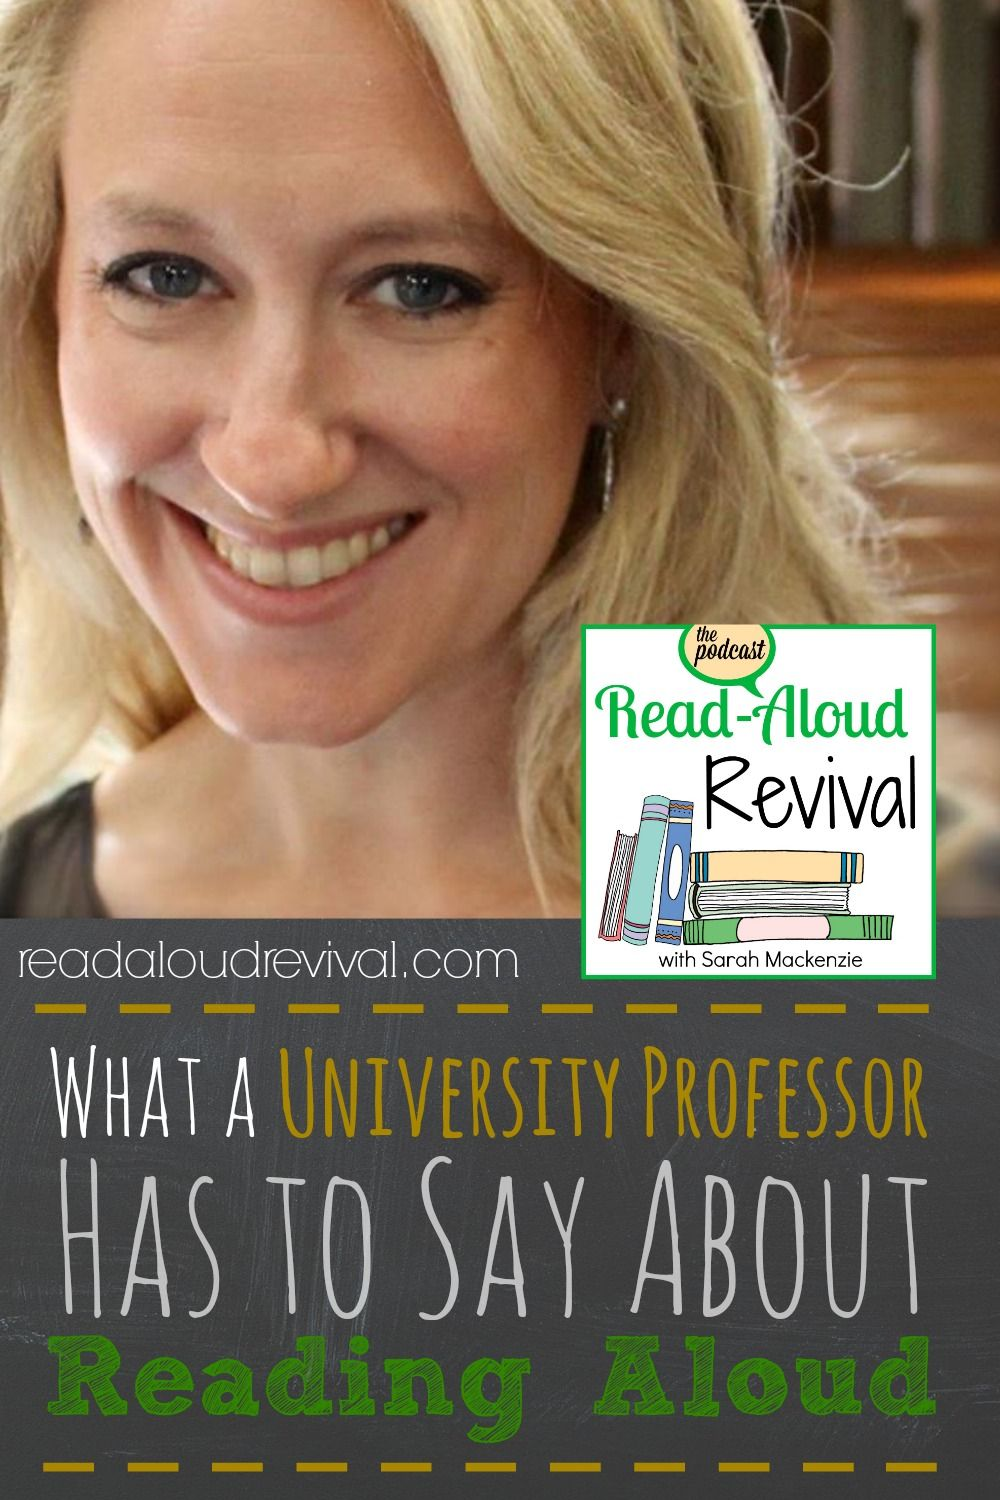 What can a university professor say about the value of reading aloud? A lot, actually. Even if all you have is 5 minutes a day, Dr. Catherine Pakaluk can educate and inspire you to read aloud more to your kids!